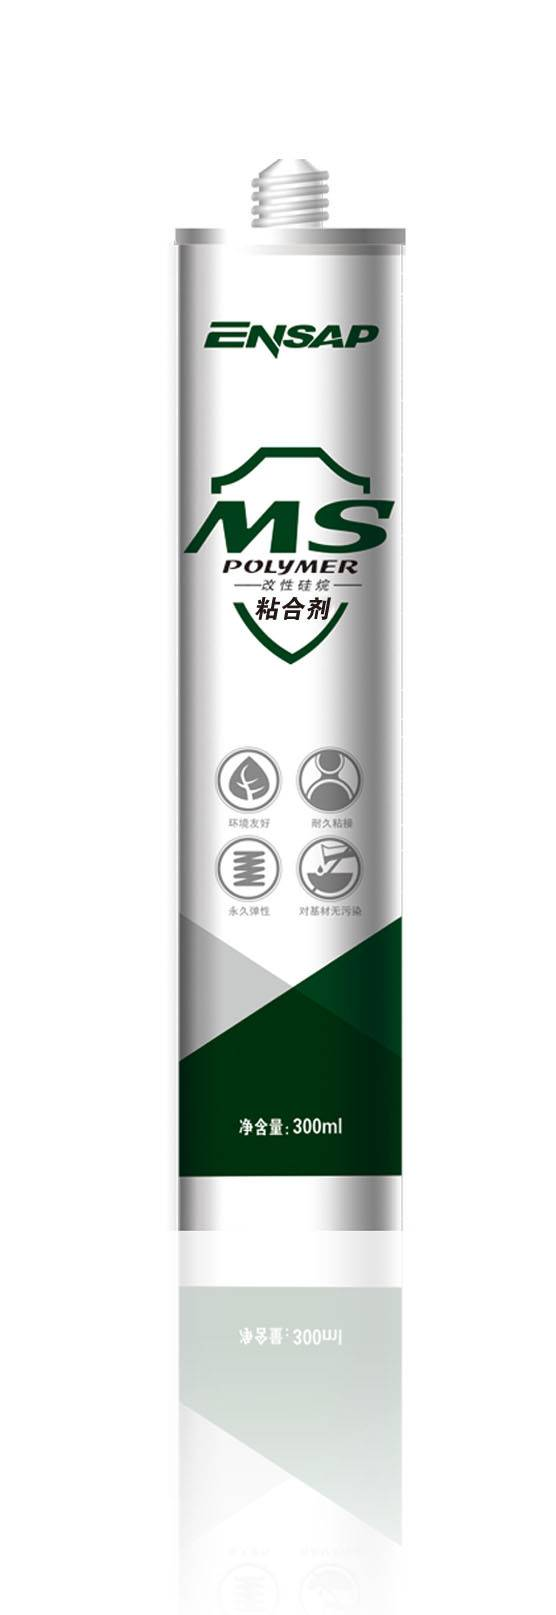 ENSAP MS polymer adhesive MS Floor Adhesive MS sealant for construction MS2008